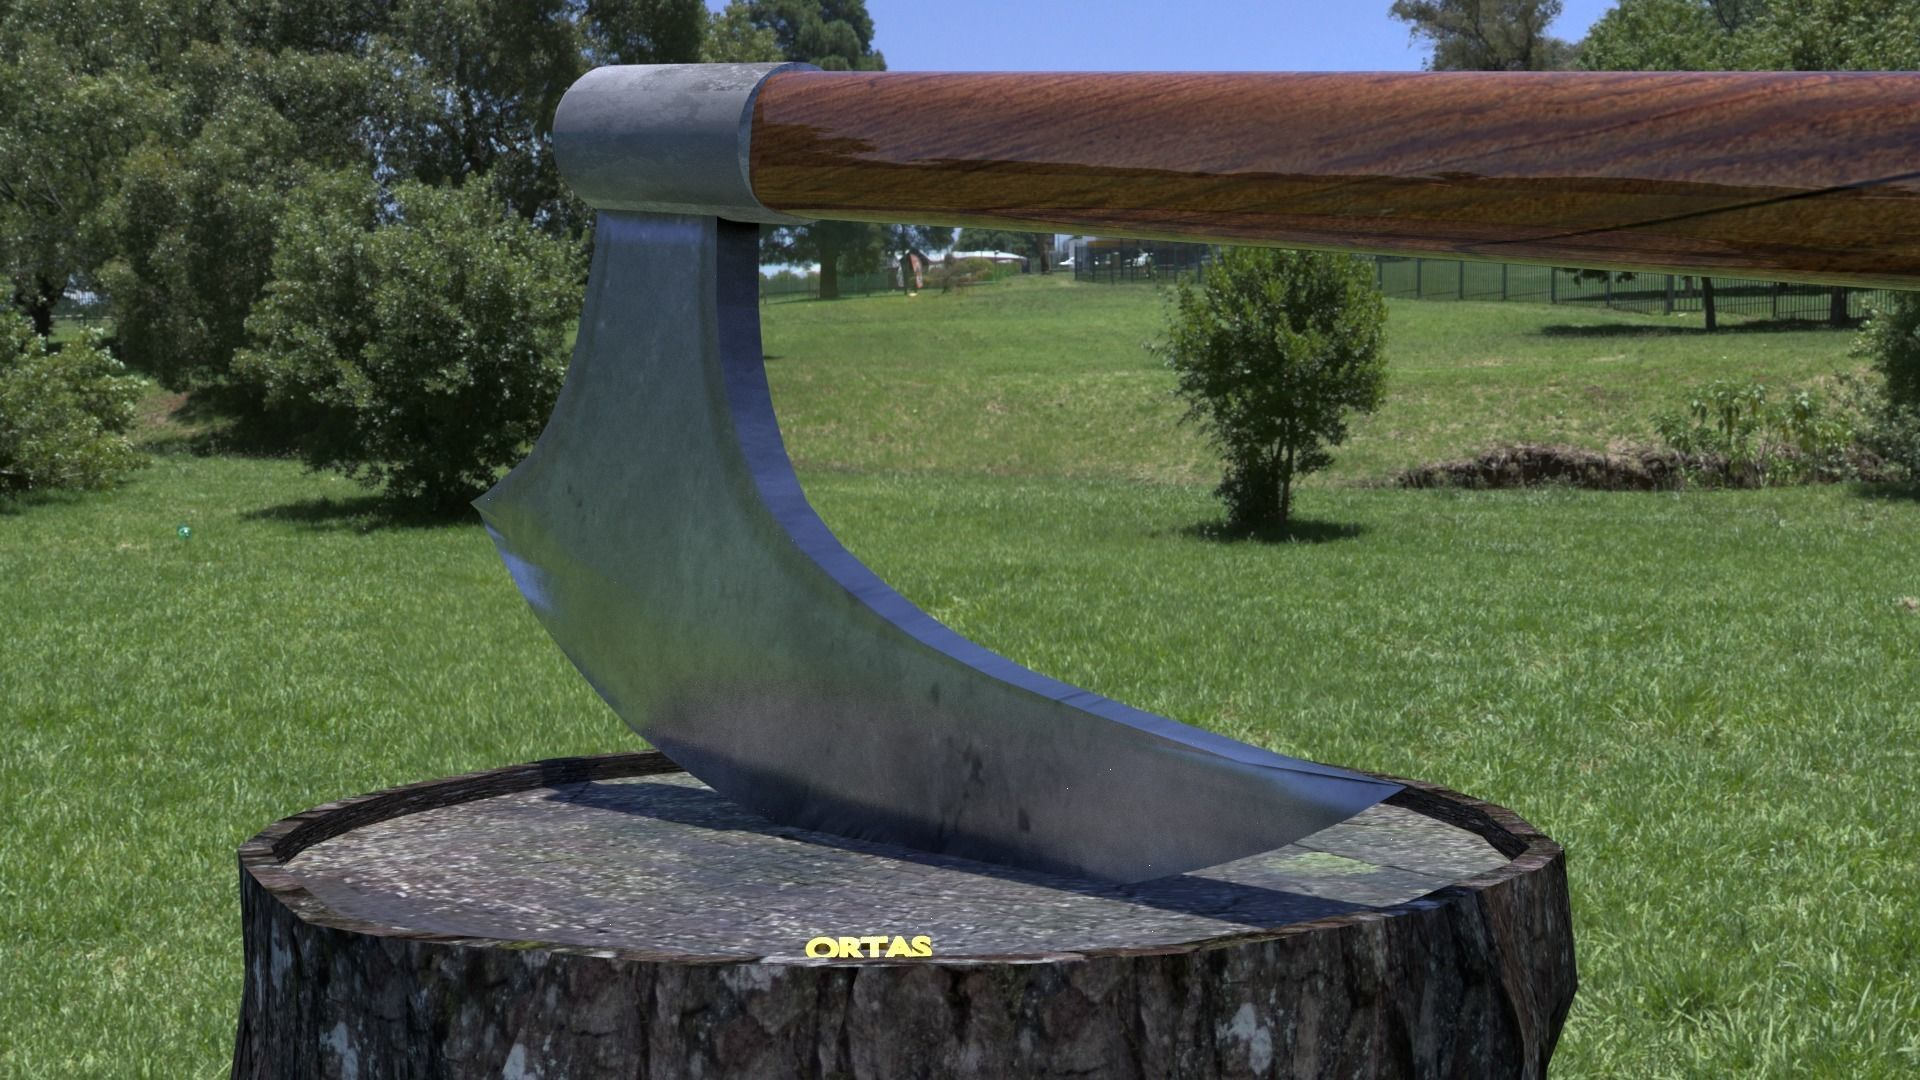 ORTAS AXE NO 7 HUGE REALISTIC AXE 3D PRINTABLE